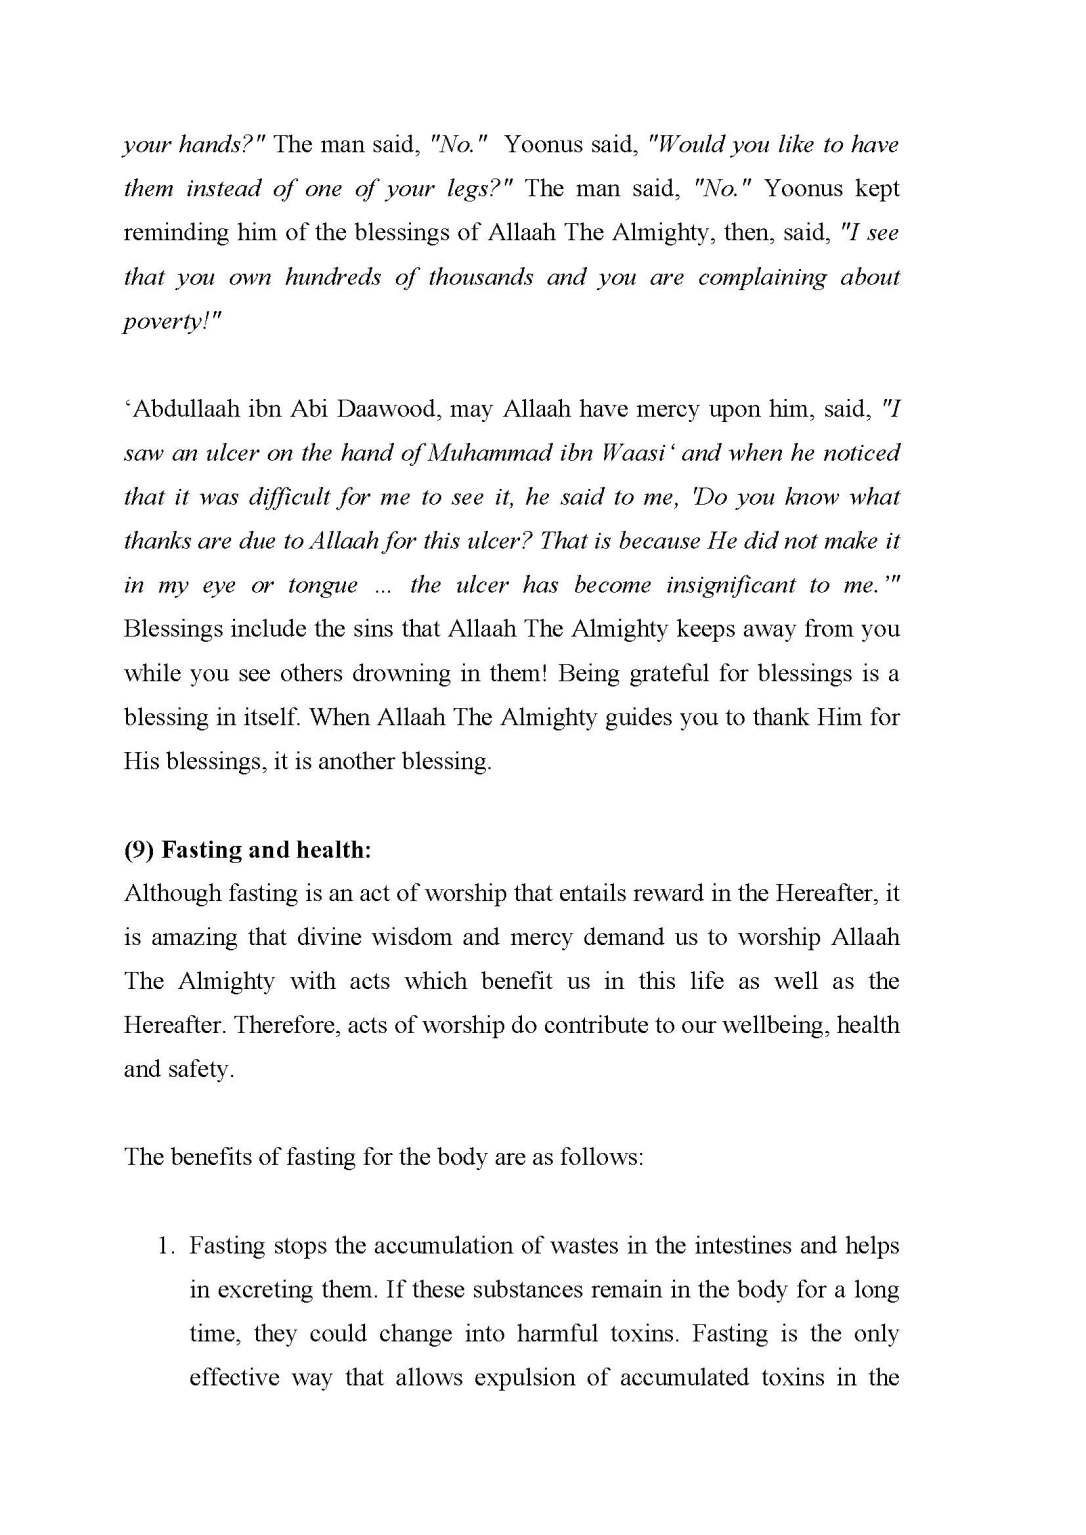 Benefits_and_Secrets_of_Fasting_Page_26